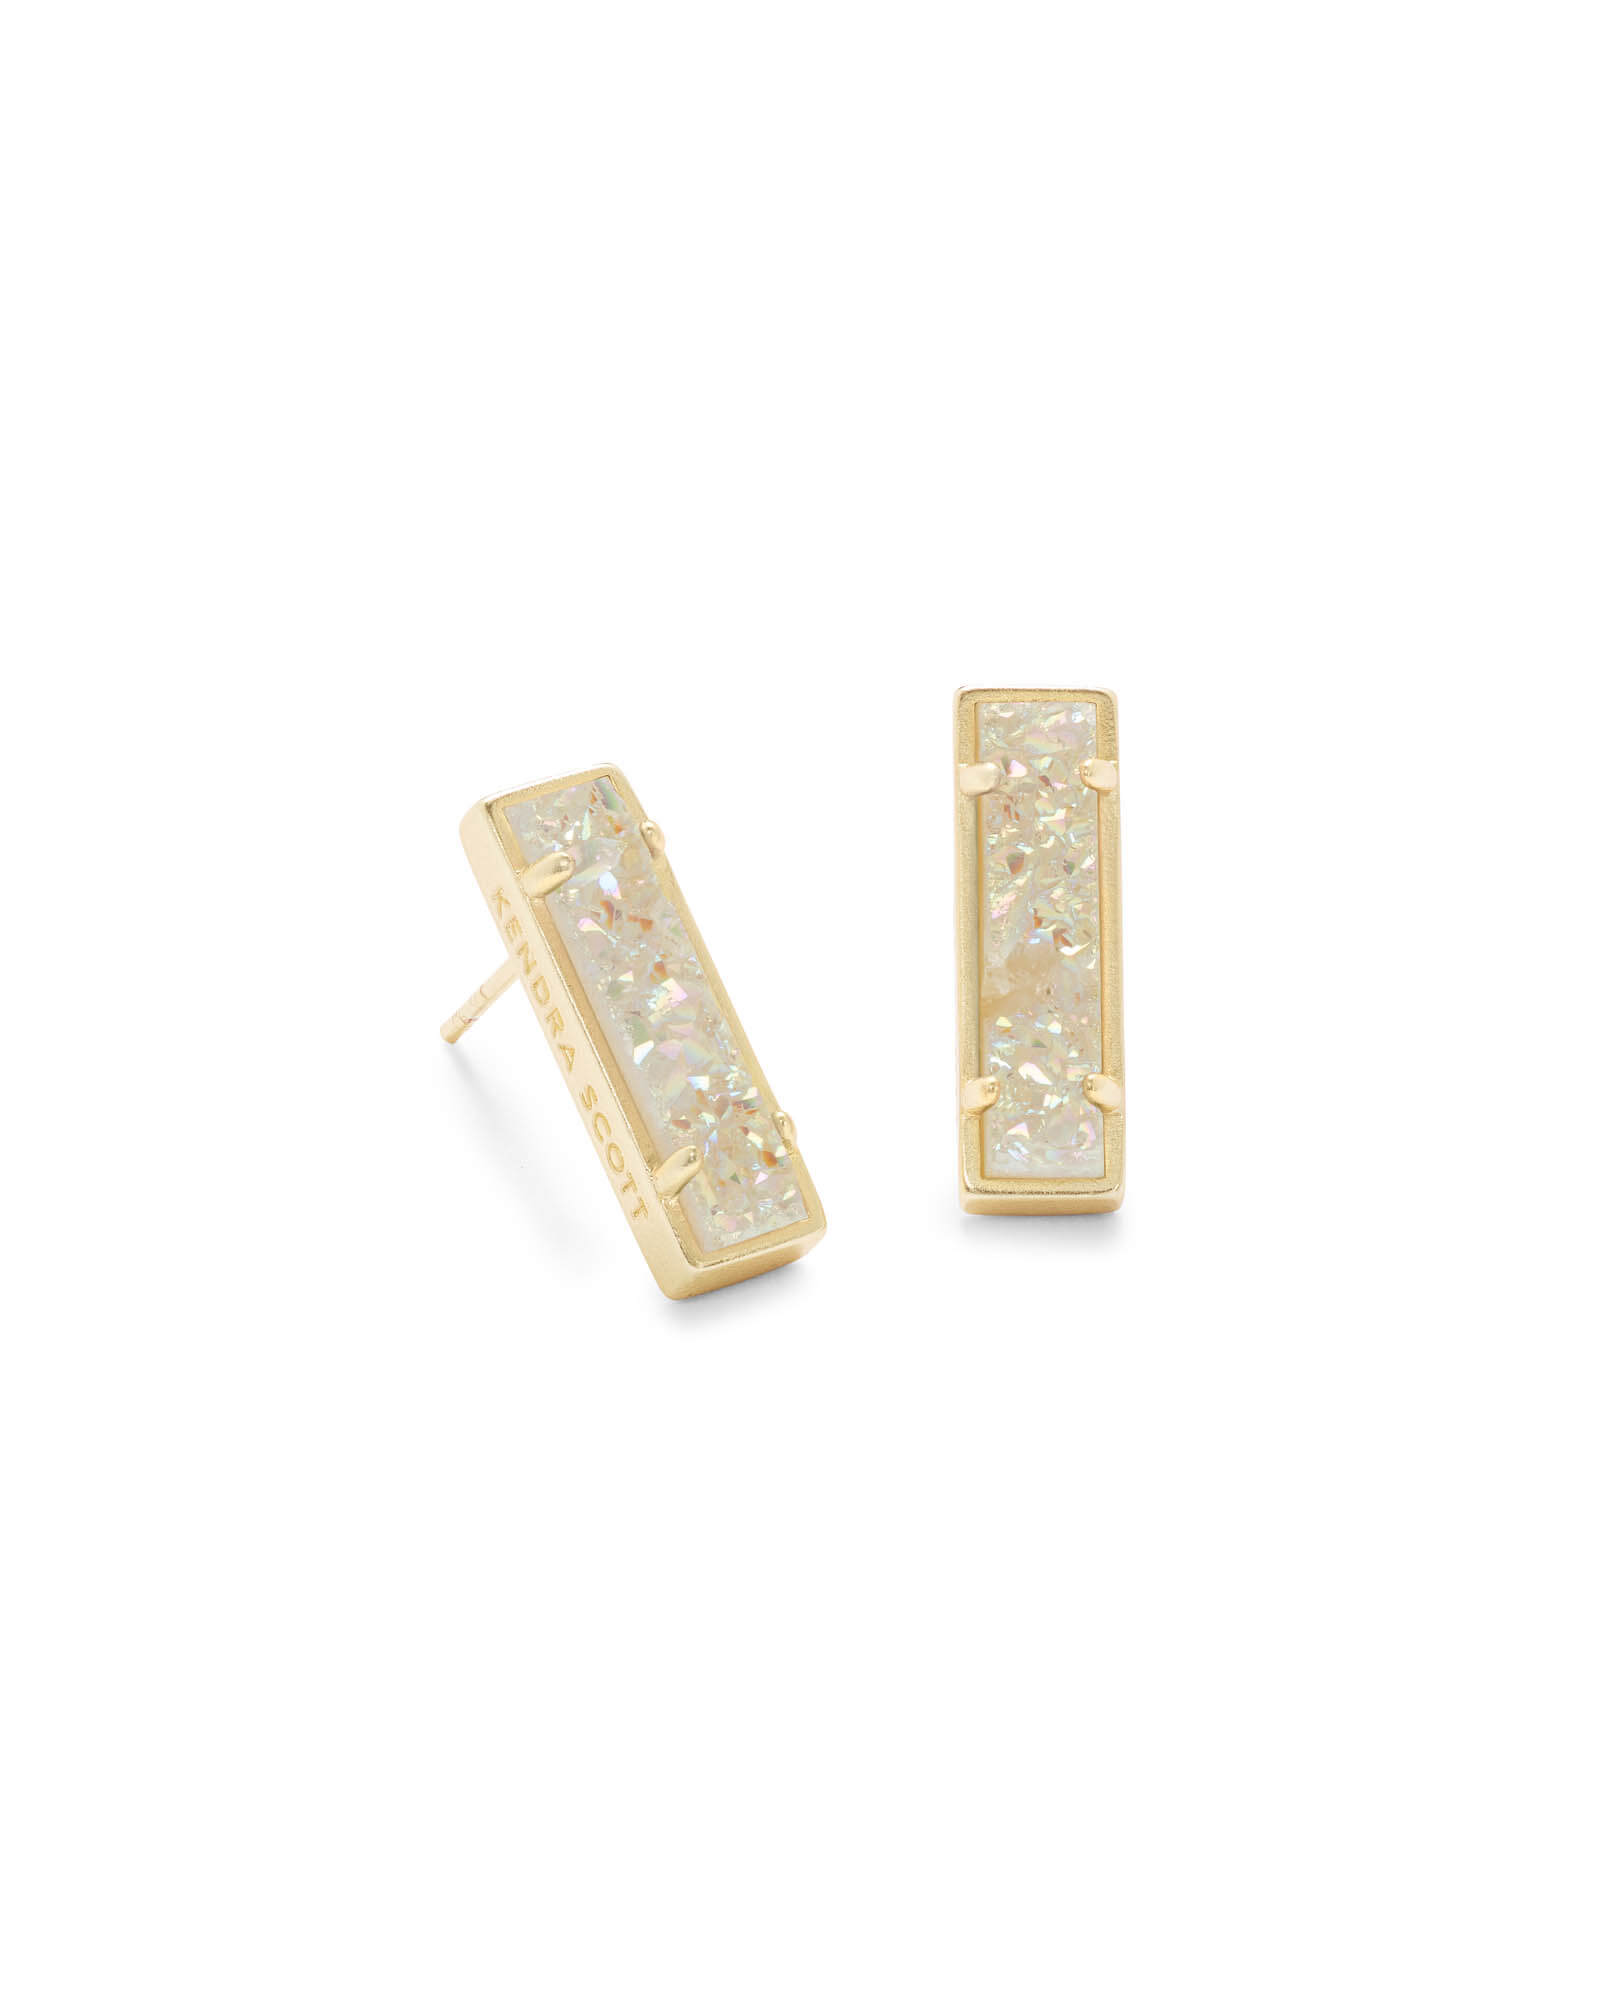 Lady Gold Stud Earrings in Iridescent Drusy